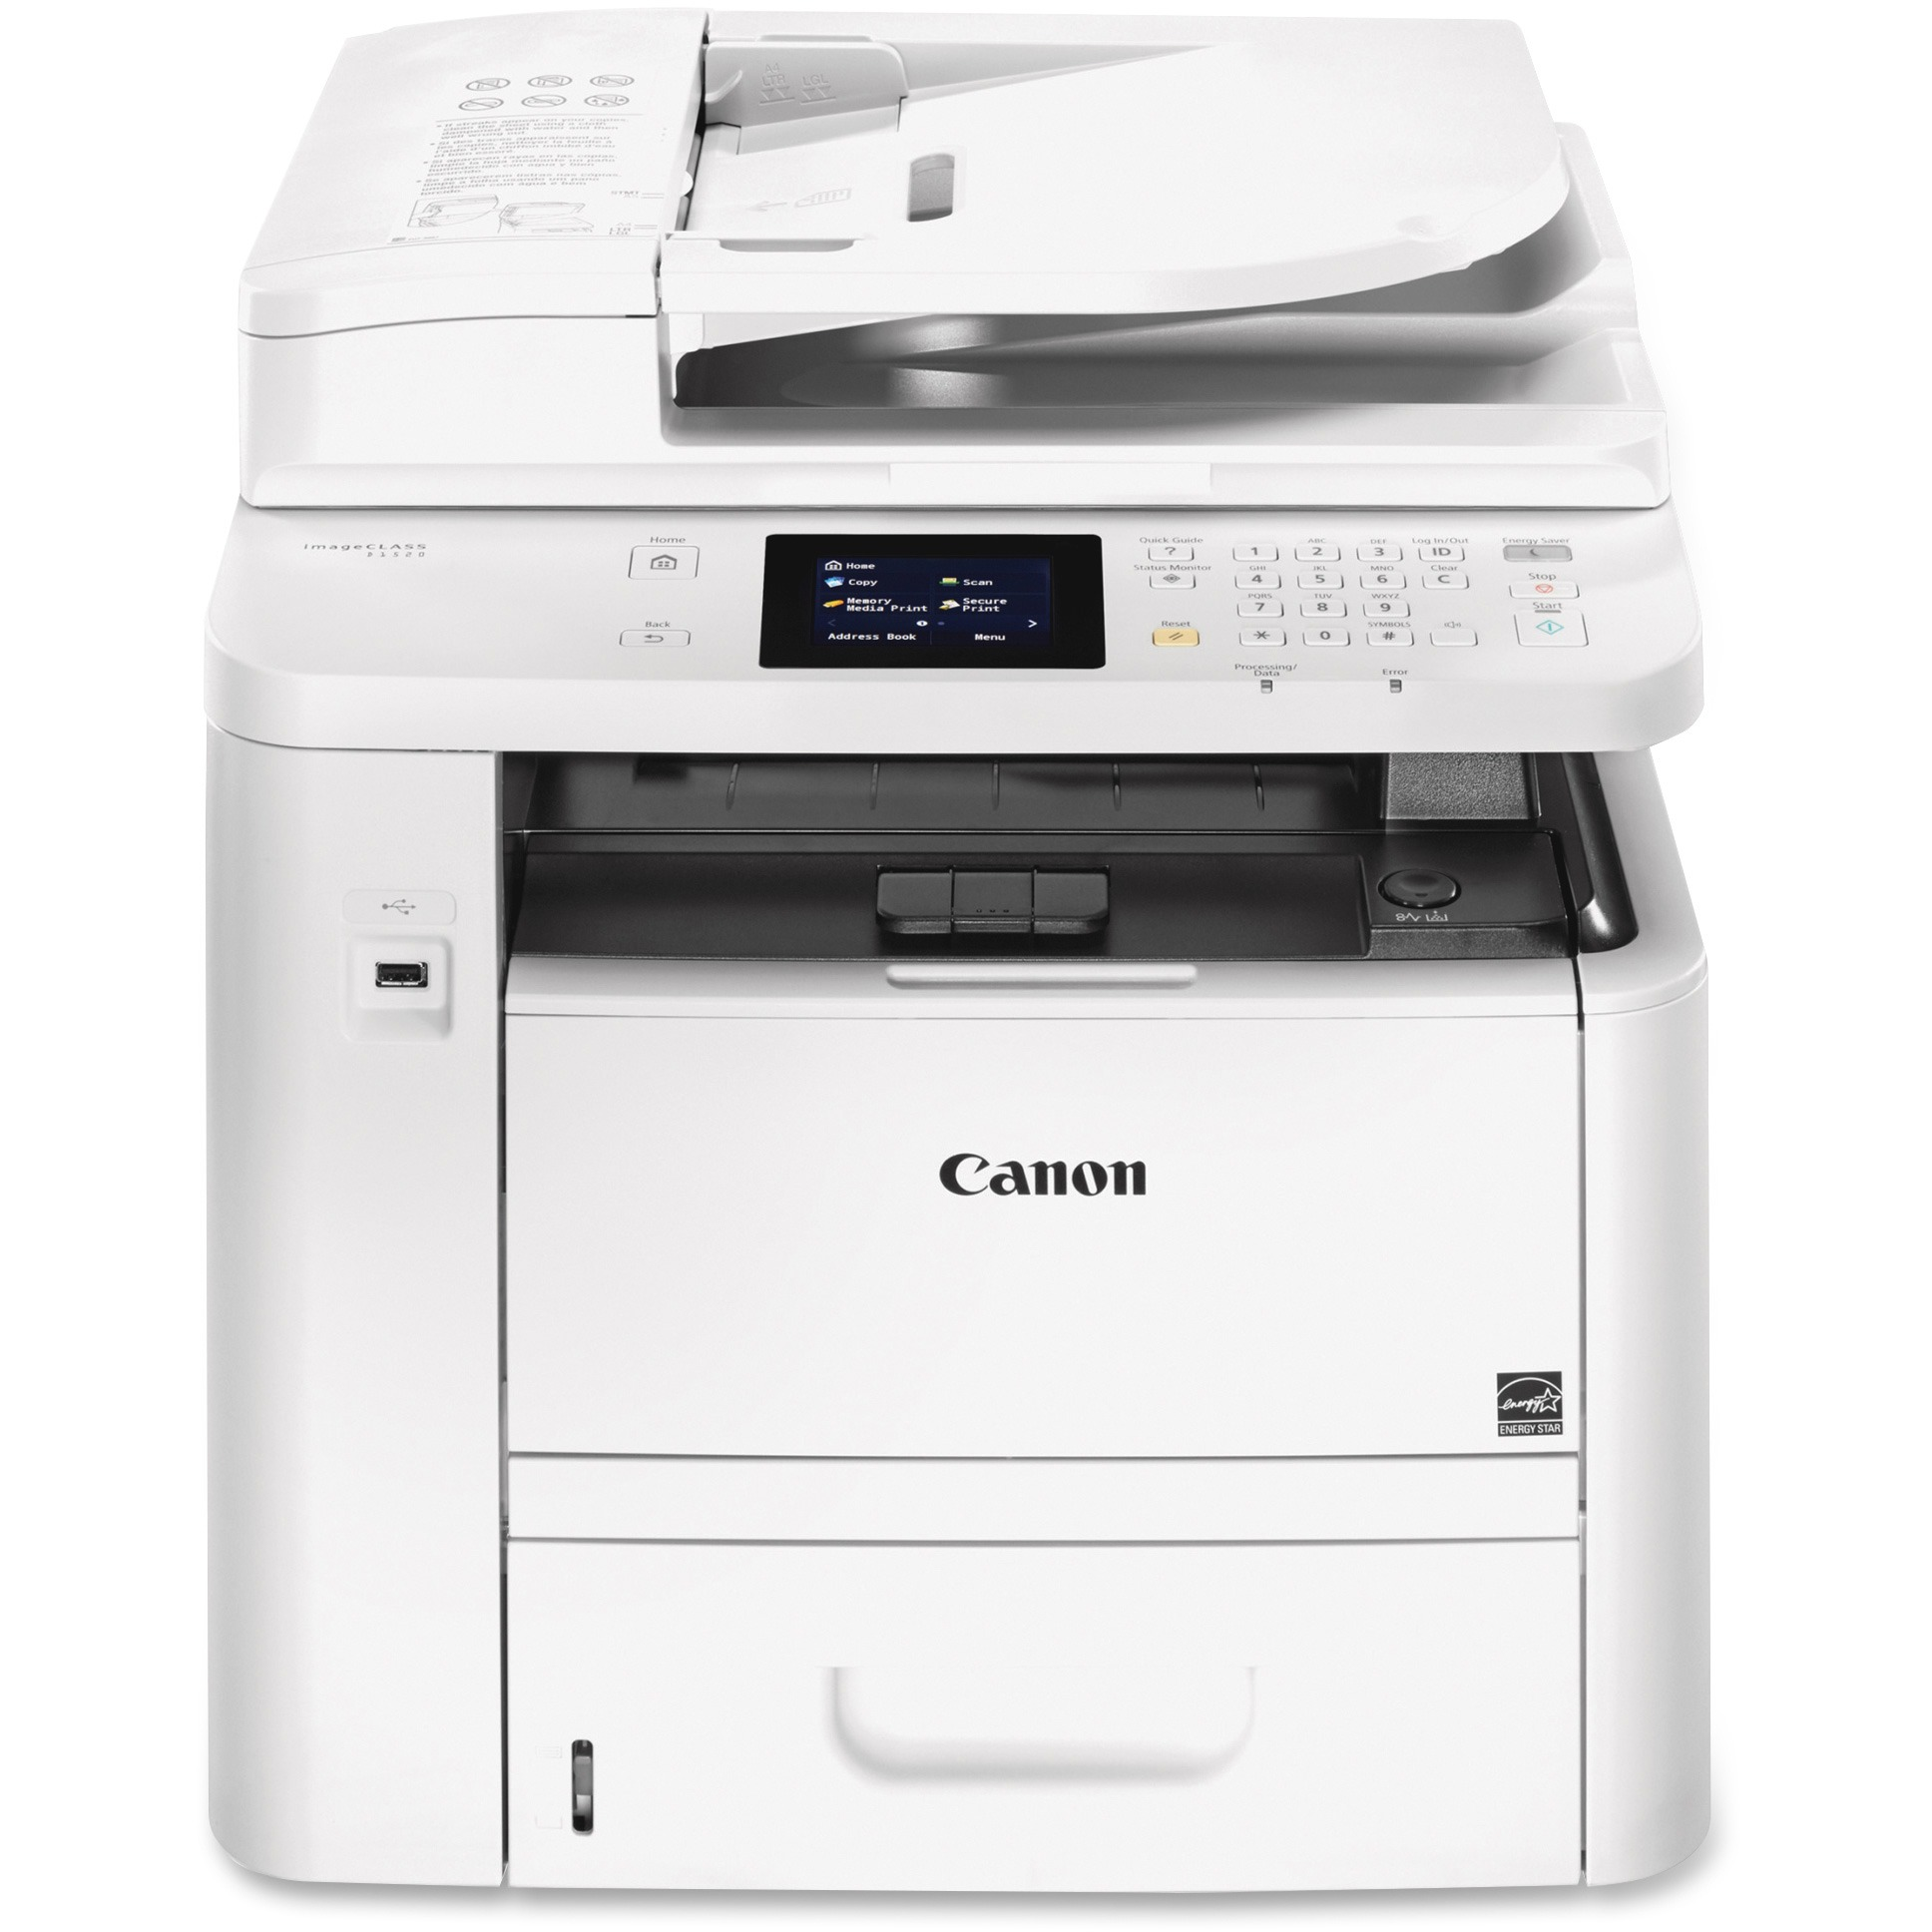 Canon iMageClass D1520 3-in-1 Multifunction Laser Copier, Copy Print Scan by Canon